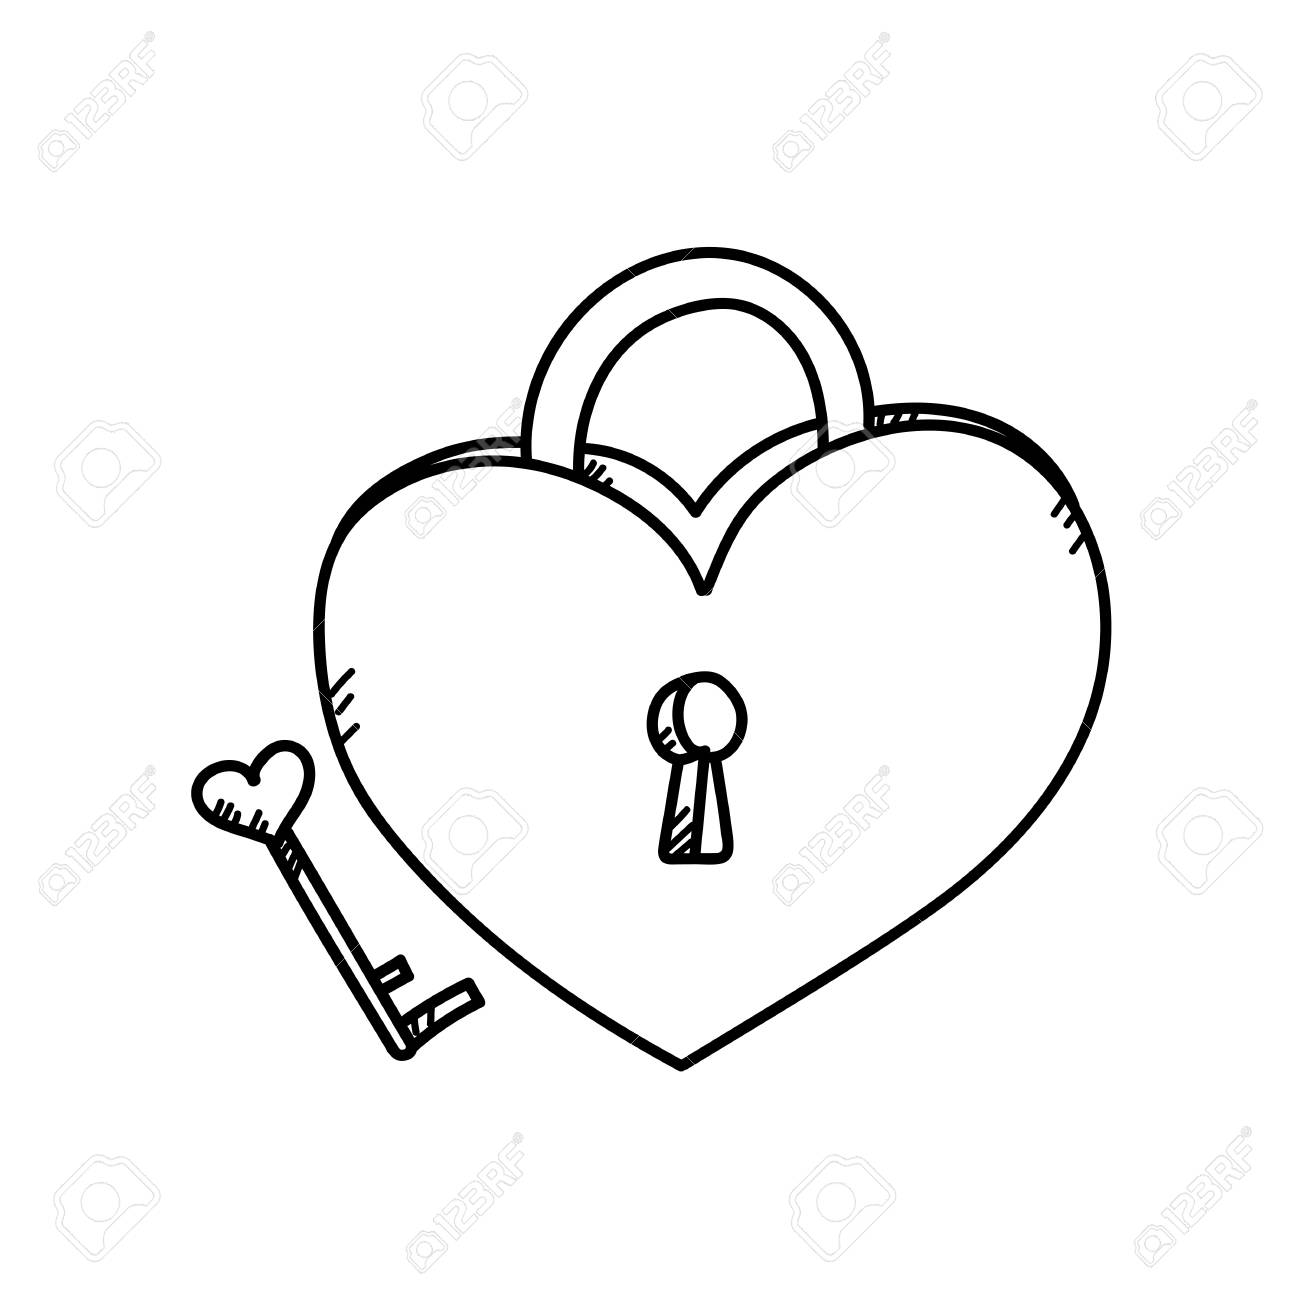 1300x1300 Freehand Drawing Heart Lock Illustration Stock Photo, Picture